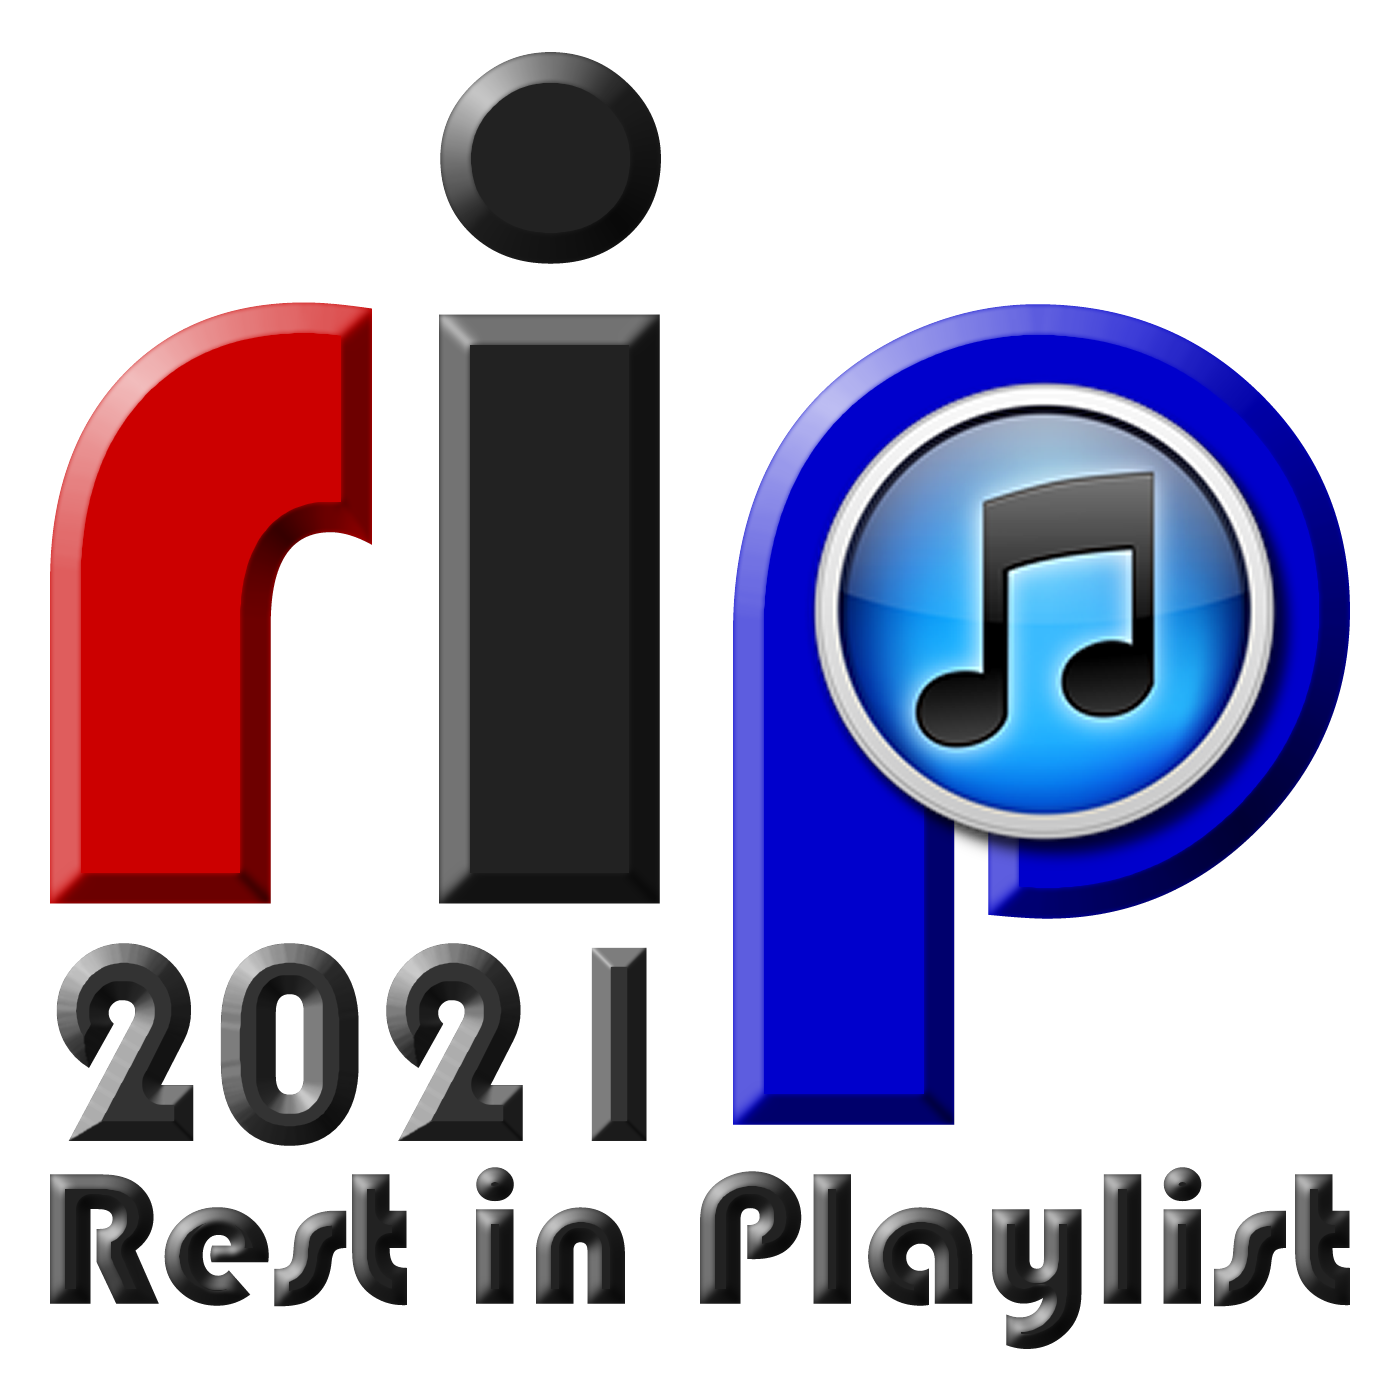 Rest in Playlist 2021